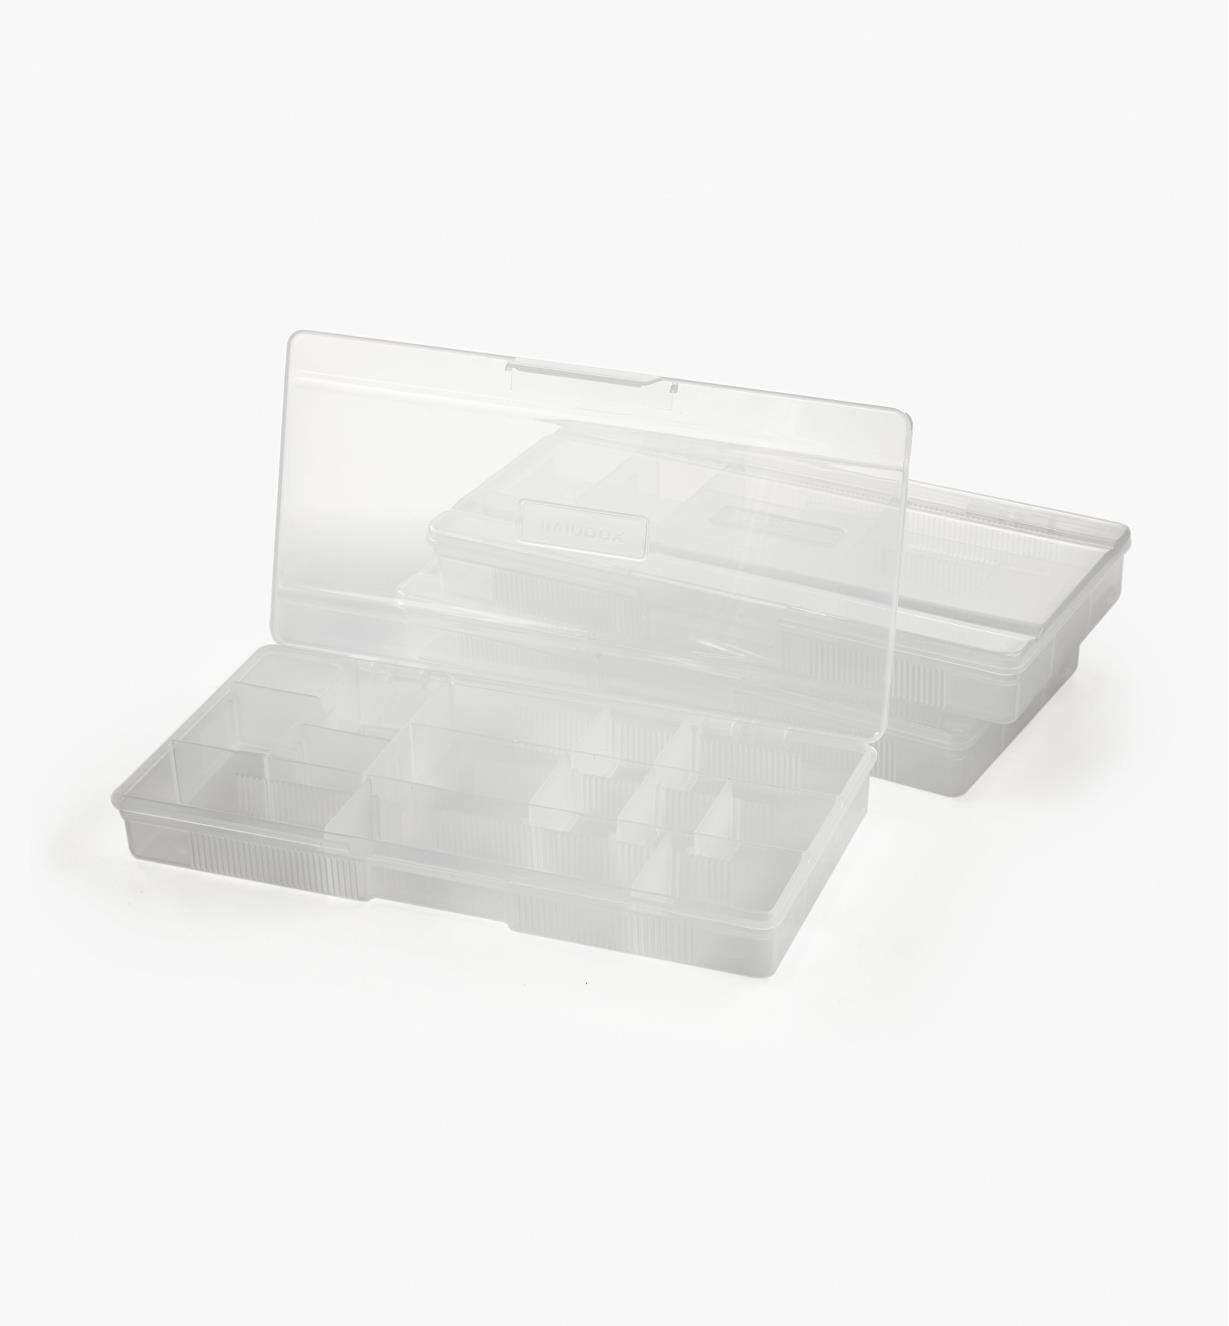 99W0282 - Rect. Divider Boxes, set of 3